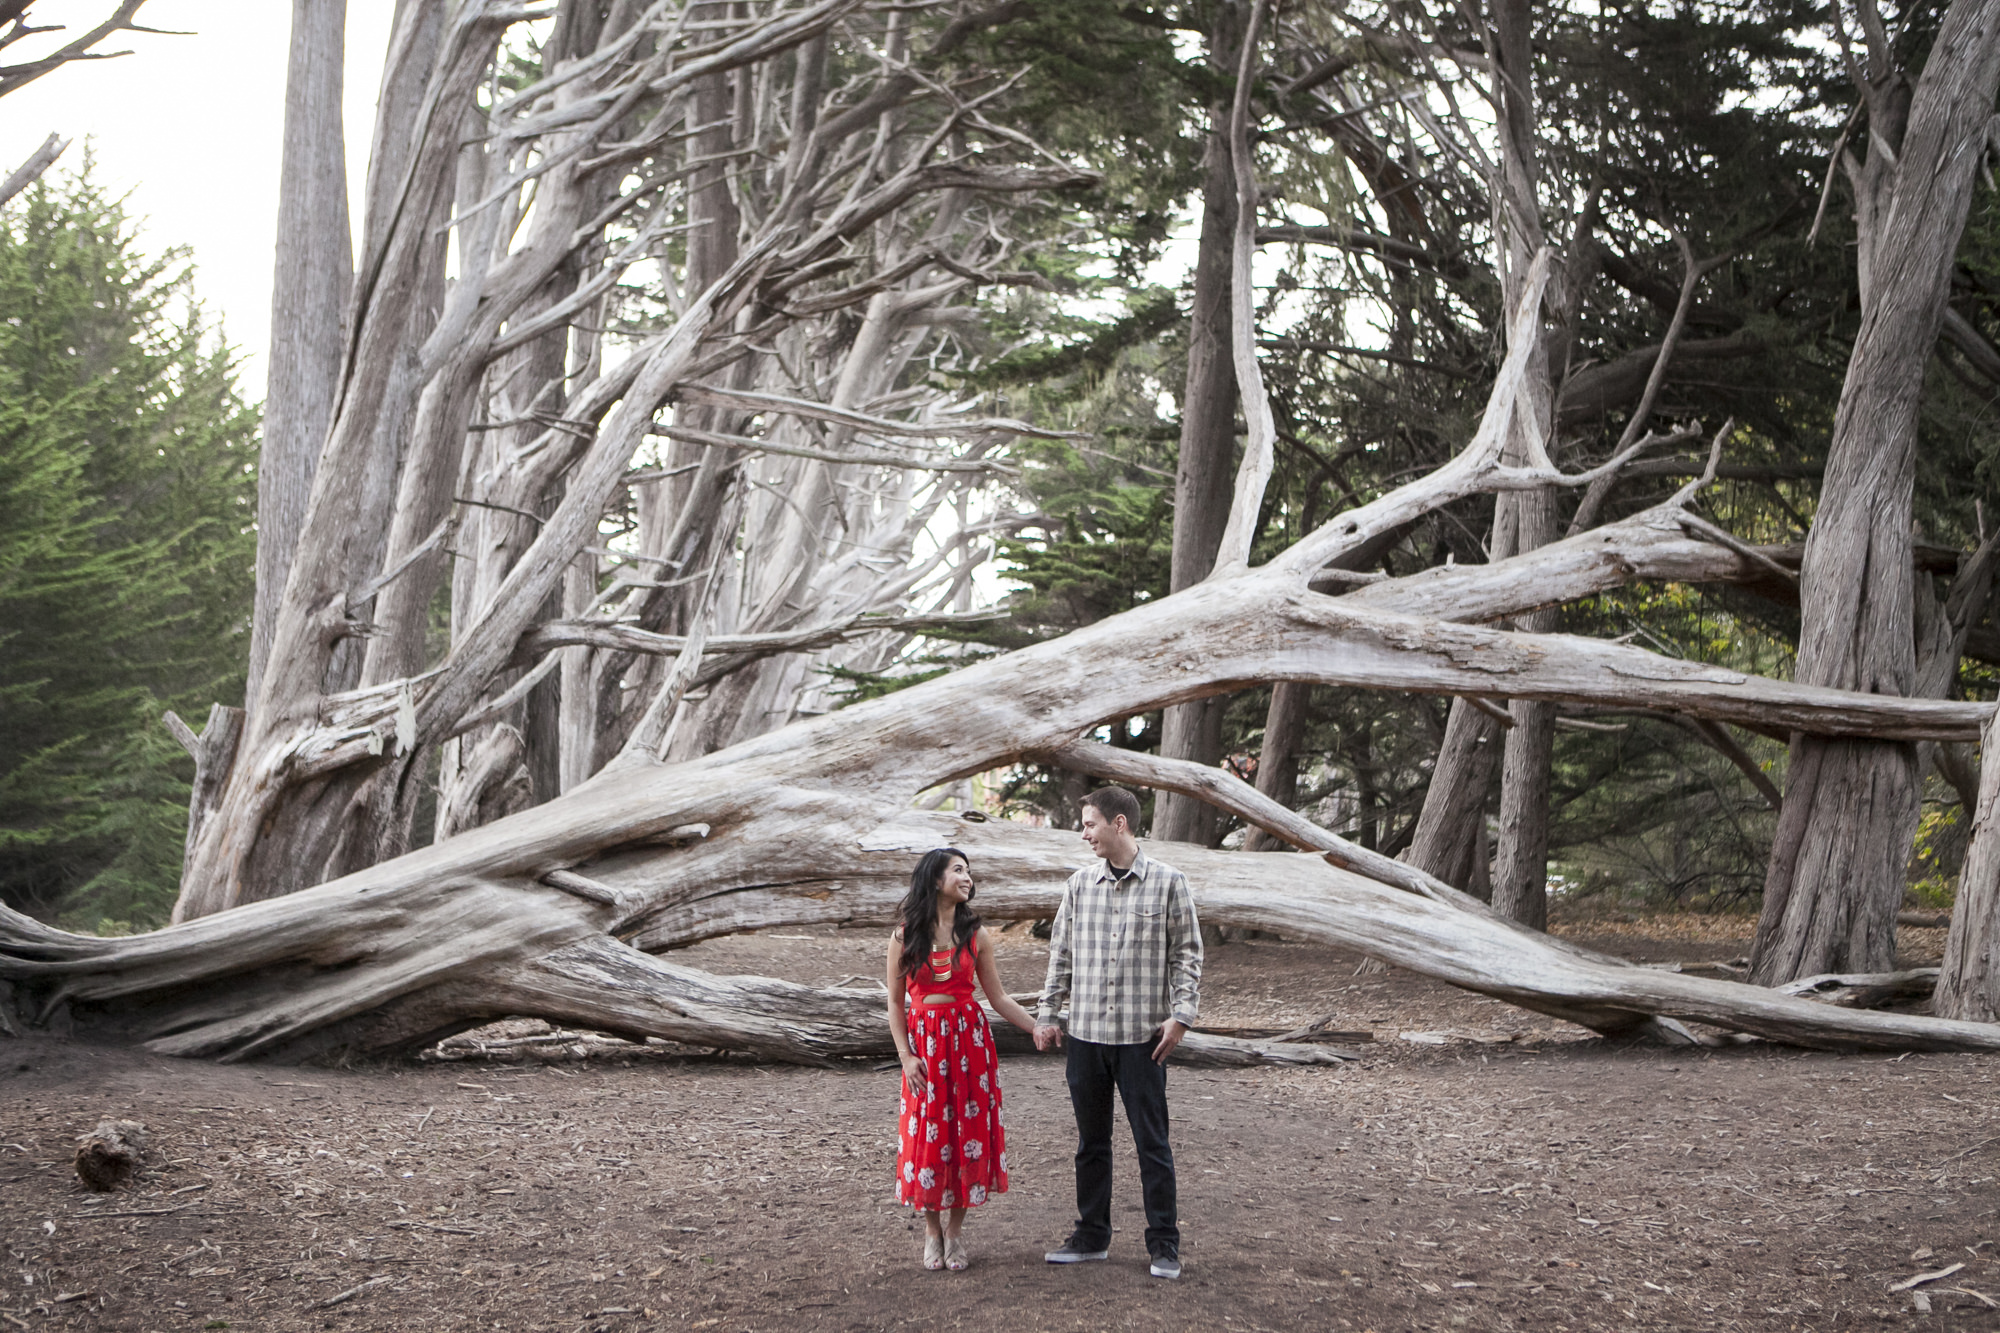 Engagement session in Moss Beach near Half Moon Bay with fallen tree